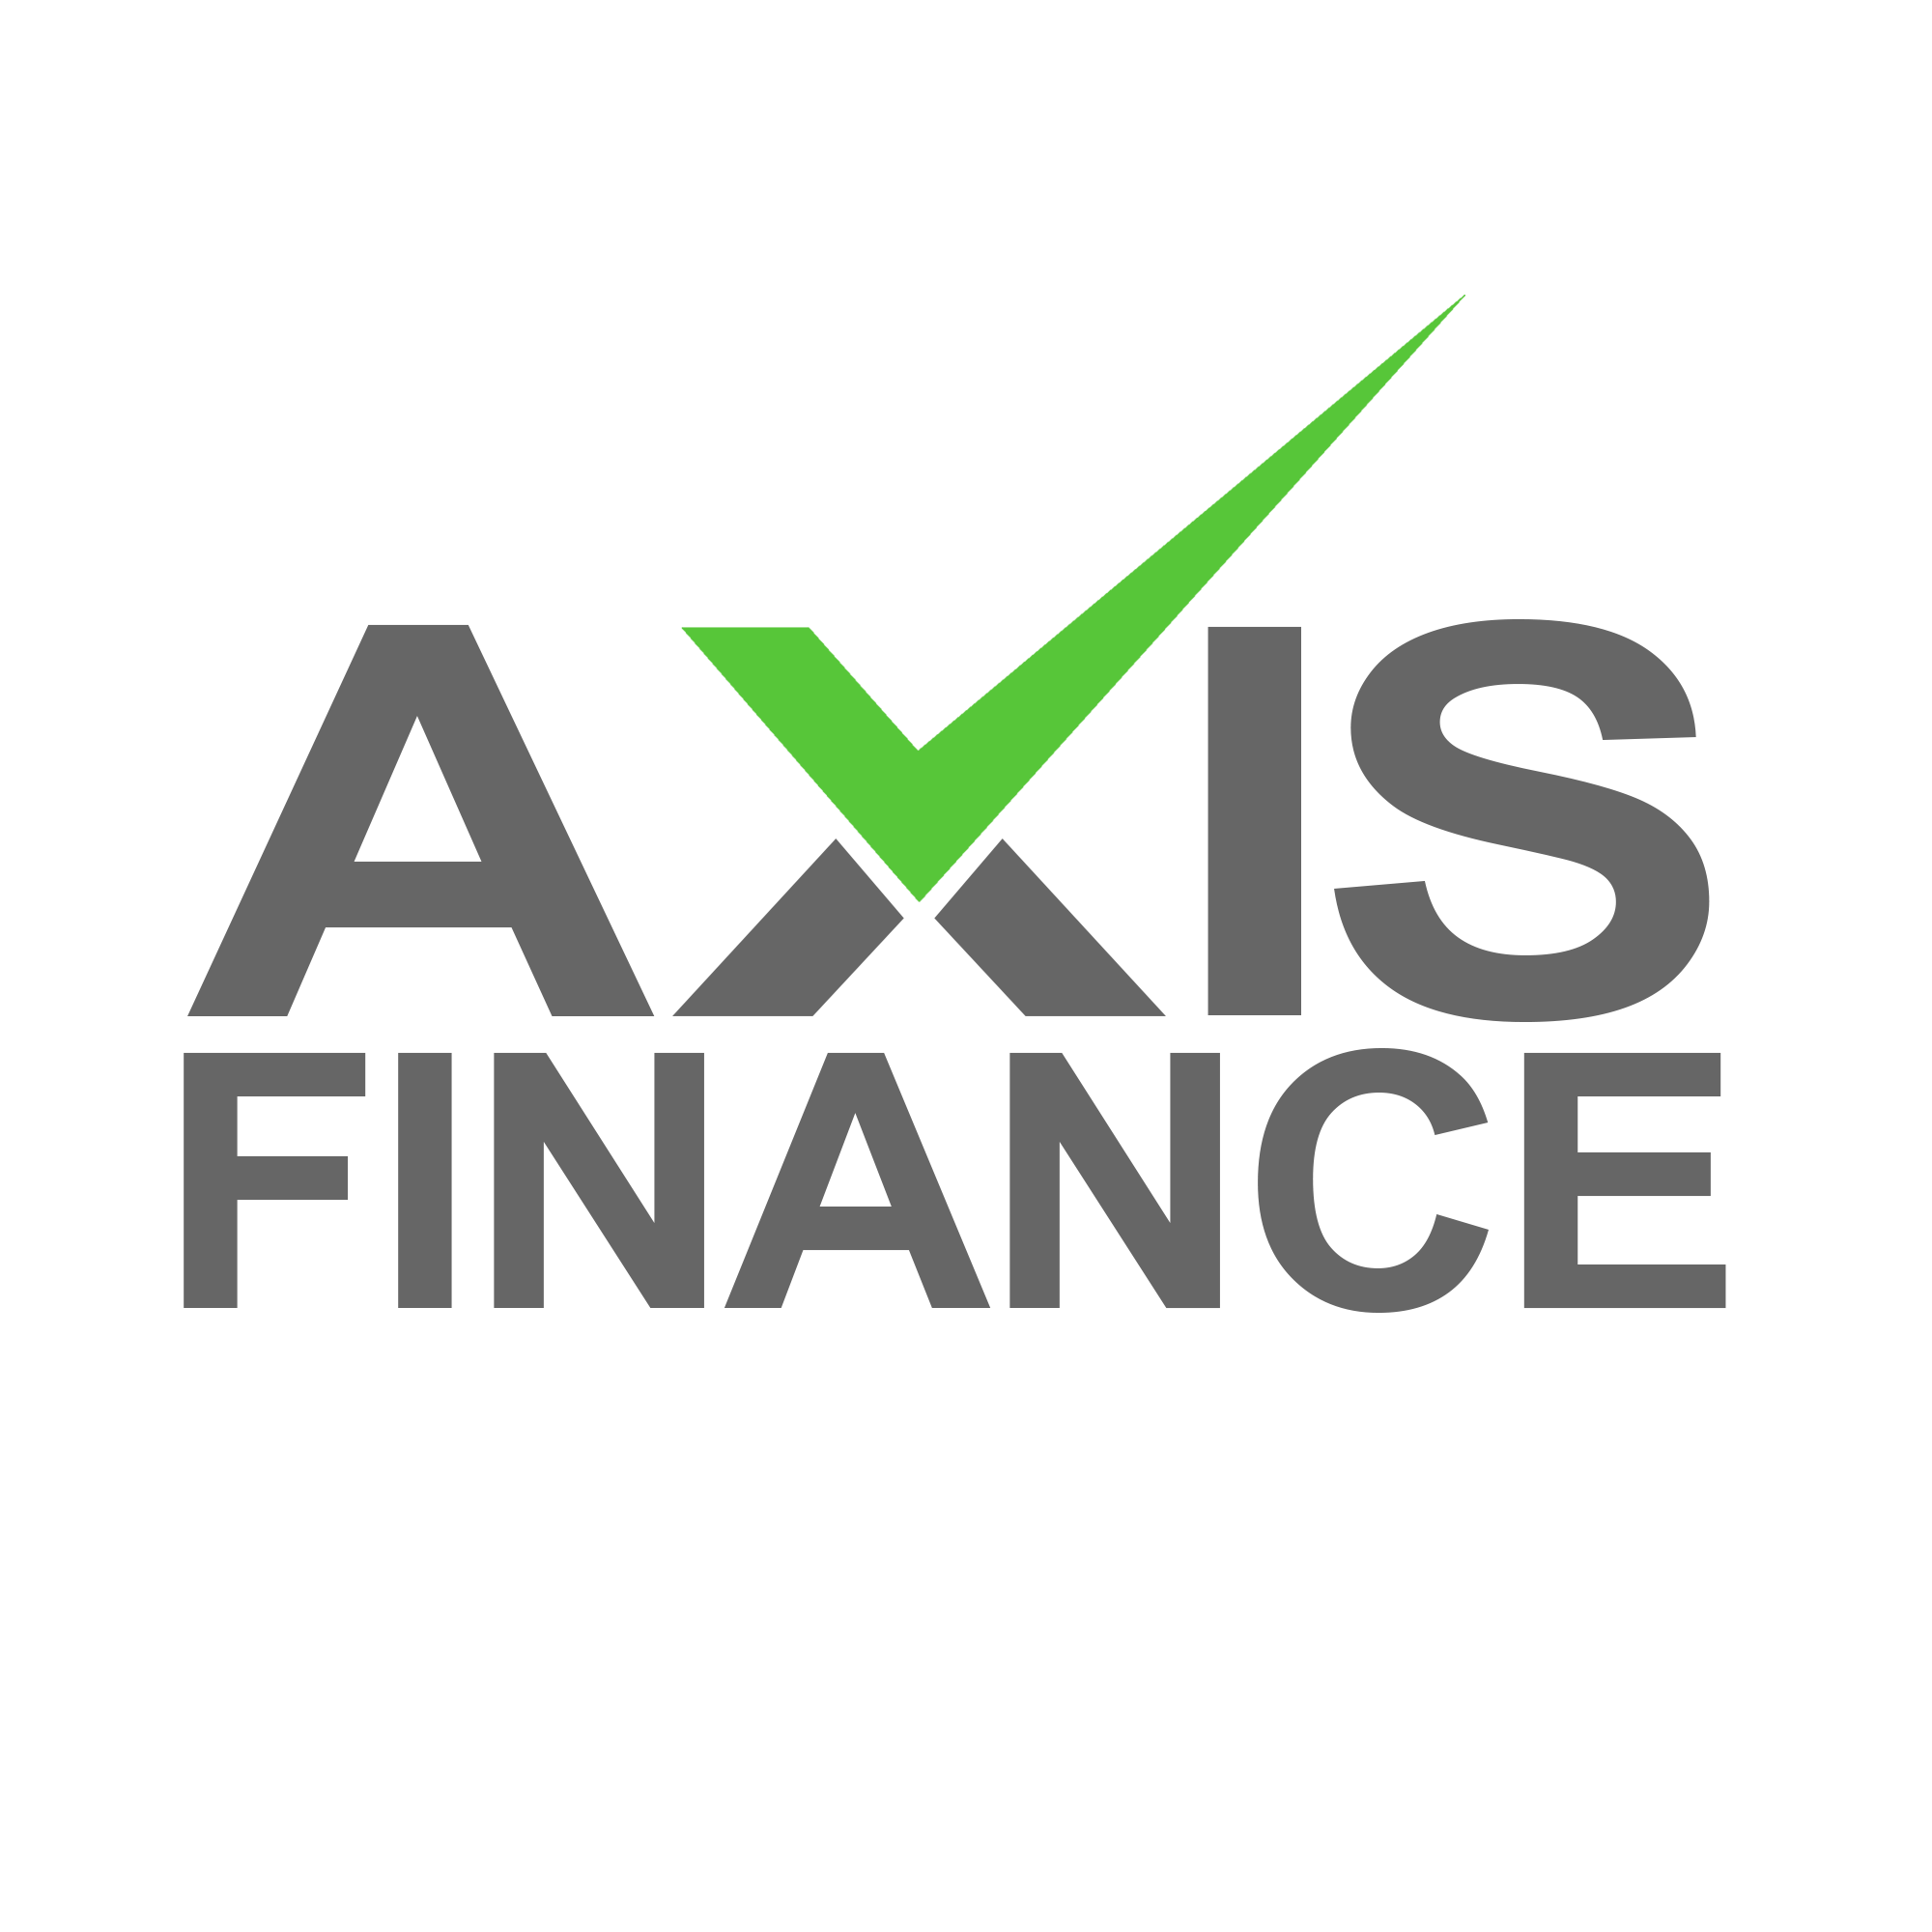 Axis Finance Limited